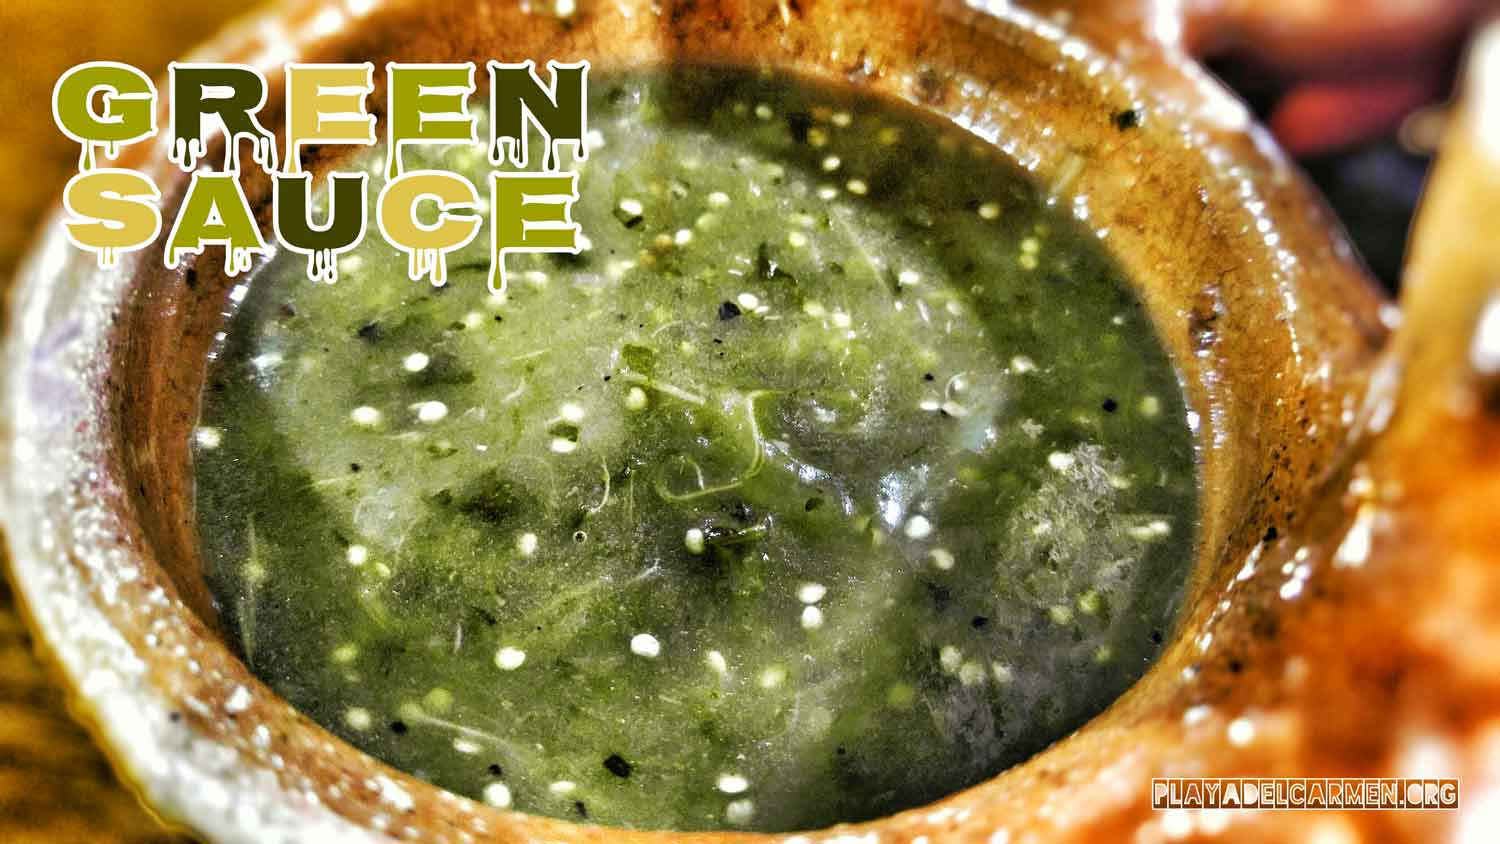 Authentic green sauce served at one of the many restaurants on 5th Avenue.